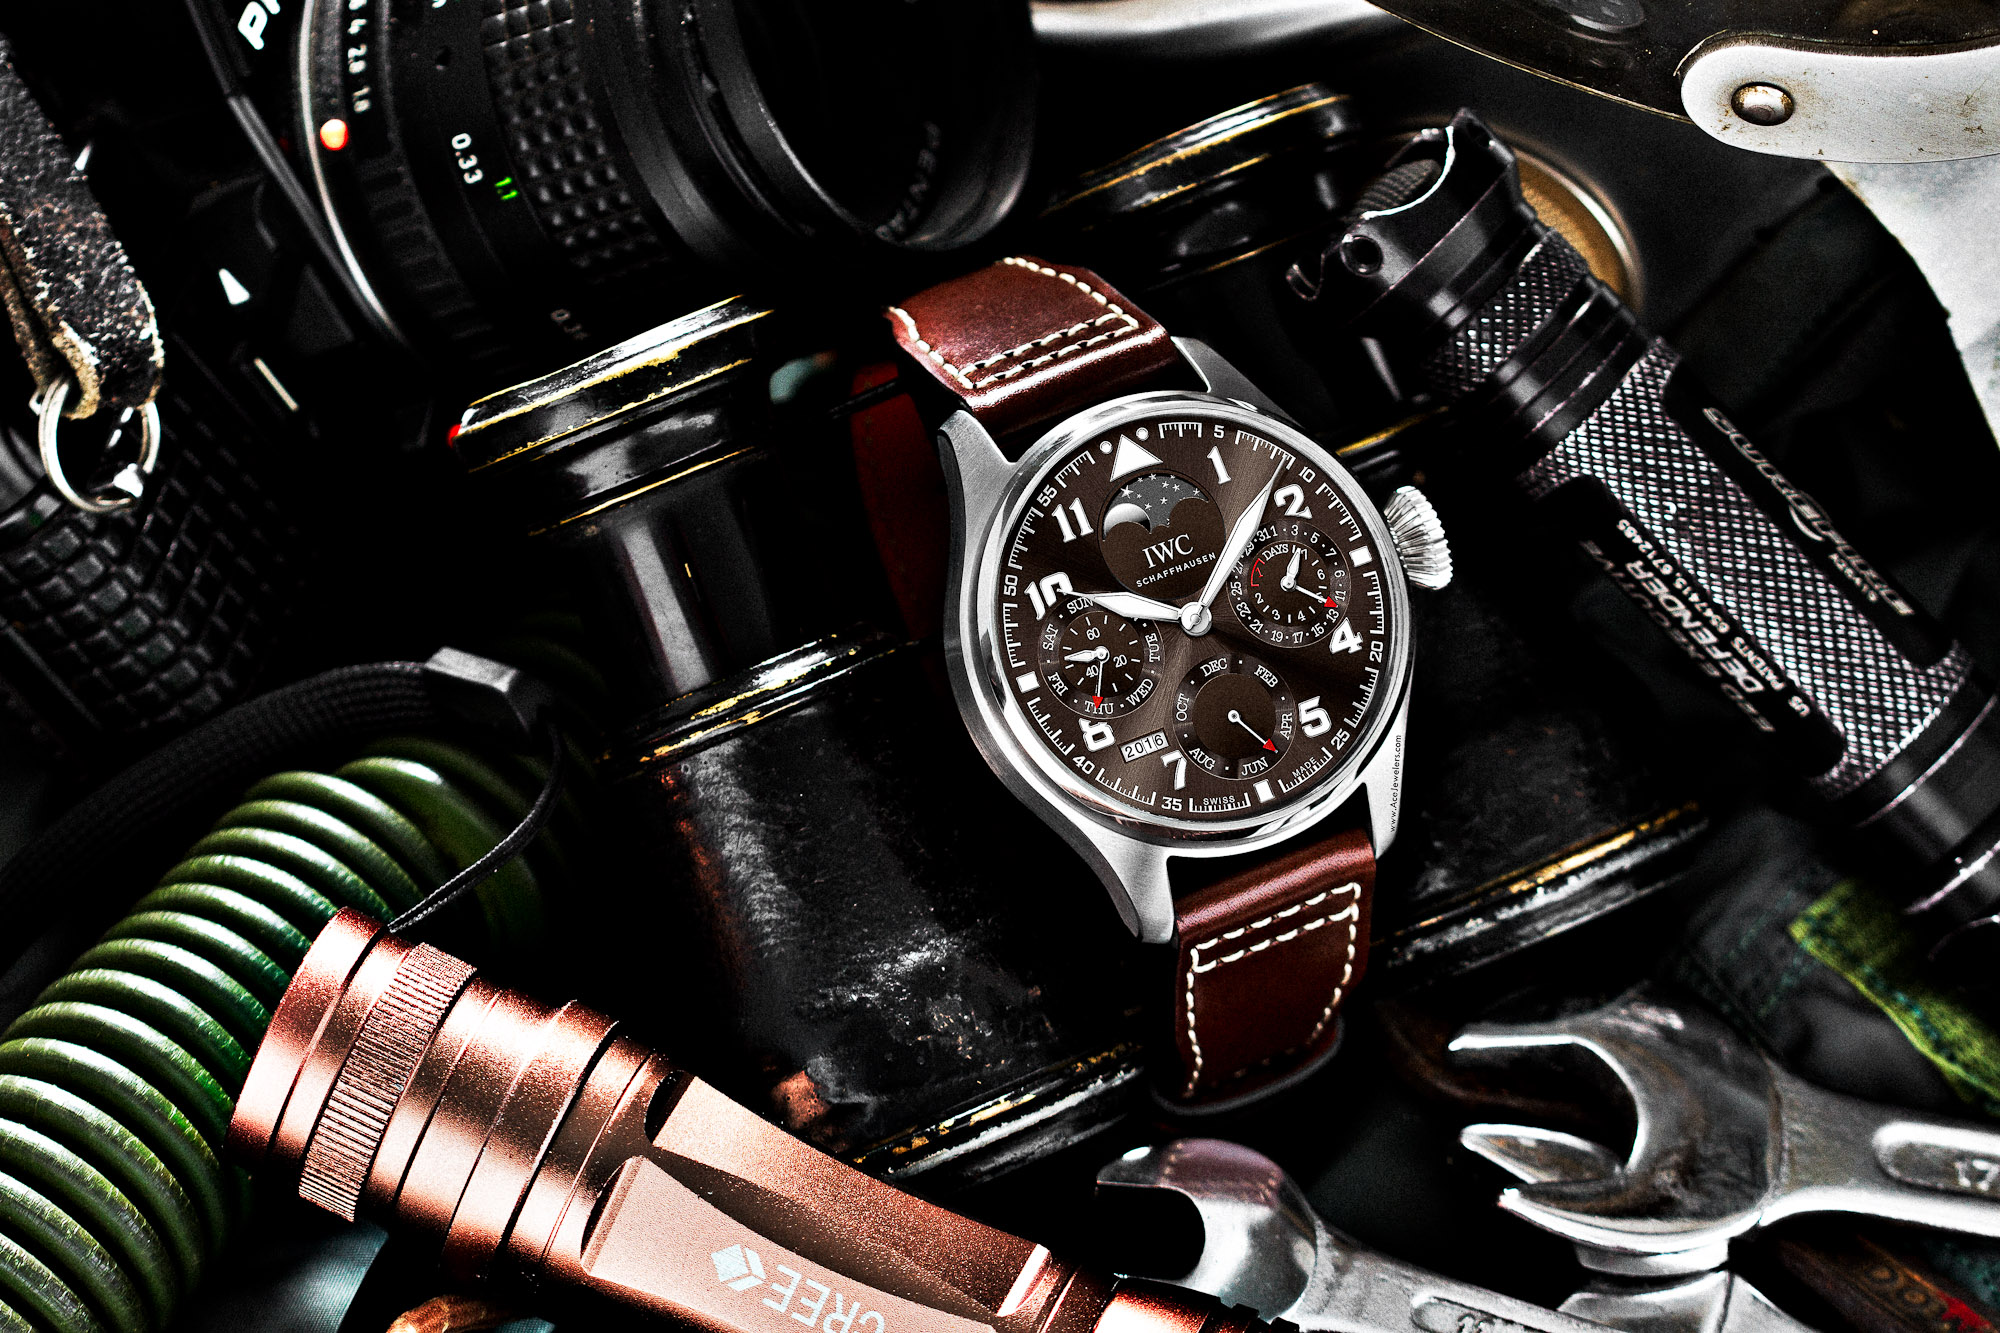 iwc-big-pilot-perpetual-calendar-antoine-de-st-exupery-stainless-steel-ace-jewelers-2016-1